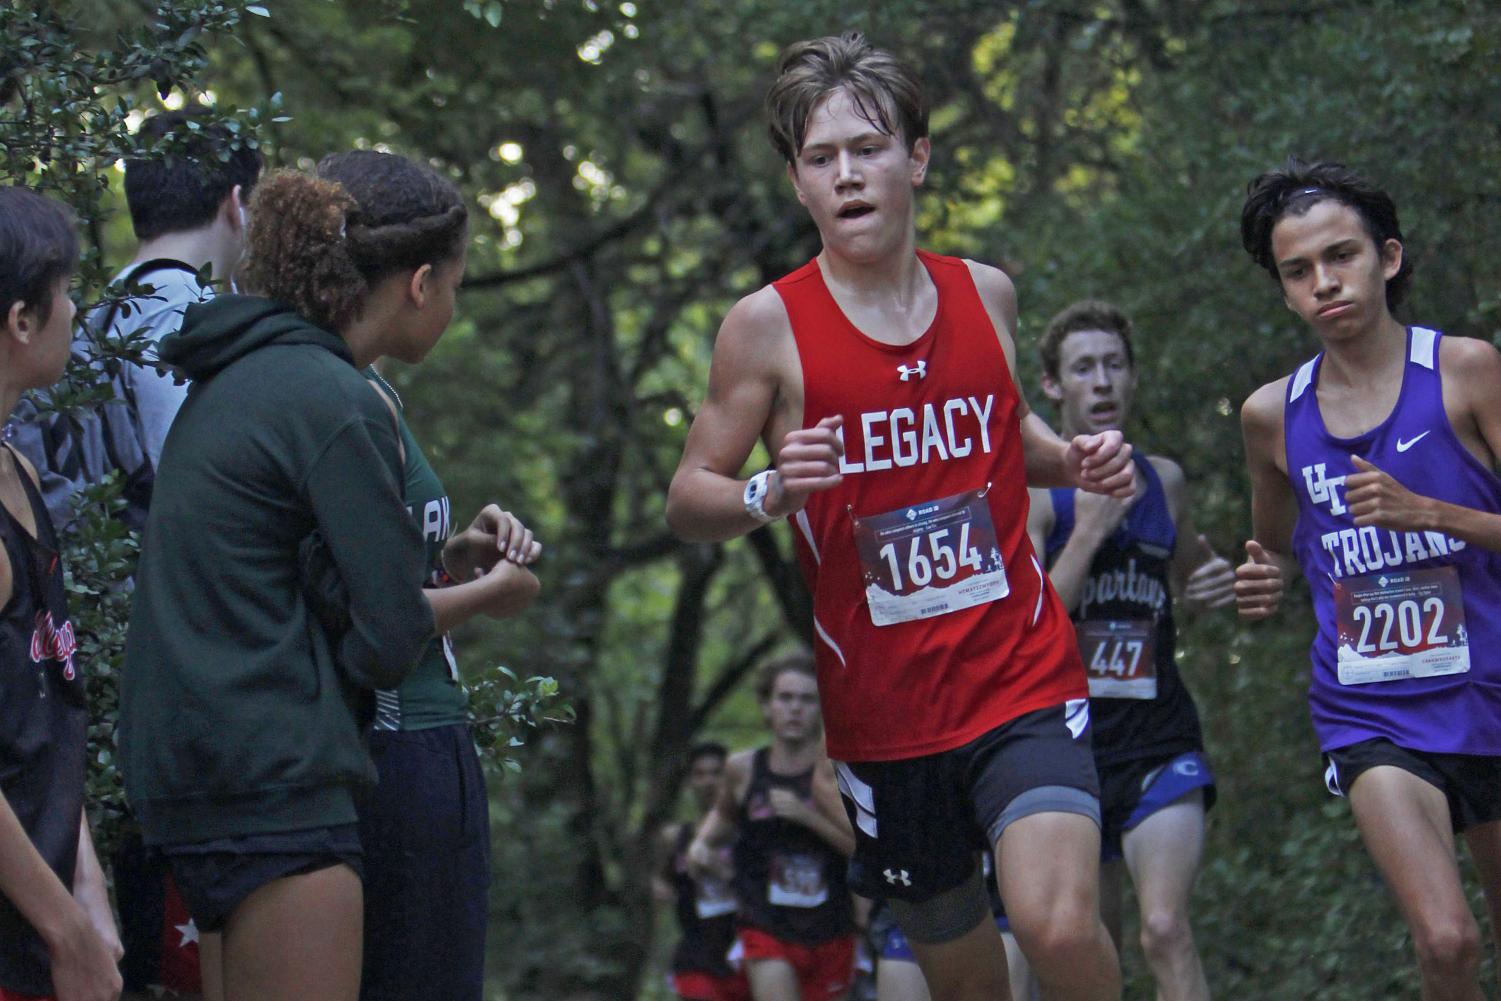 Ethan Elston, 11, runs at the Burleson Invitational on Aug. 30